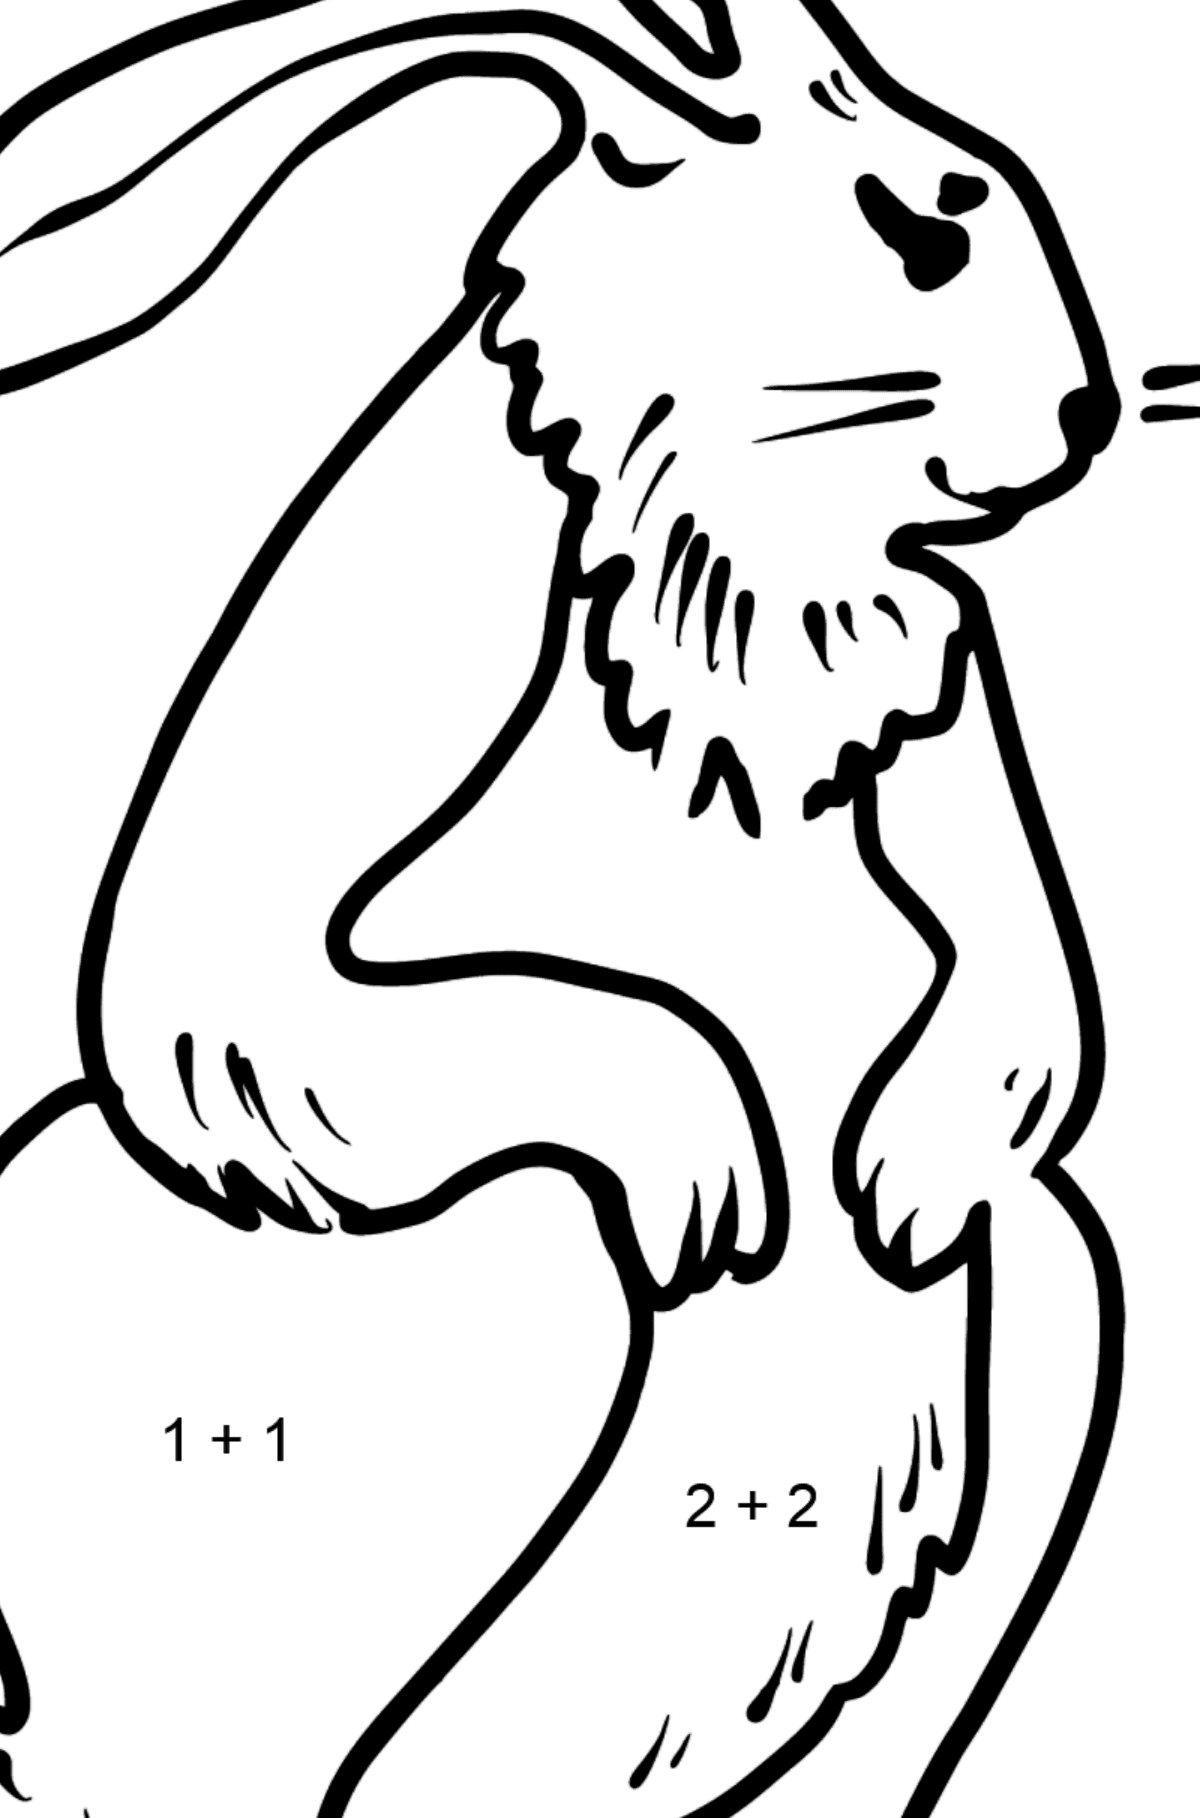 Rabbit coloring page - Math Coloring - Addition for Kids